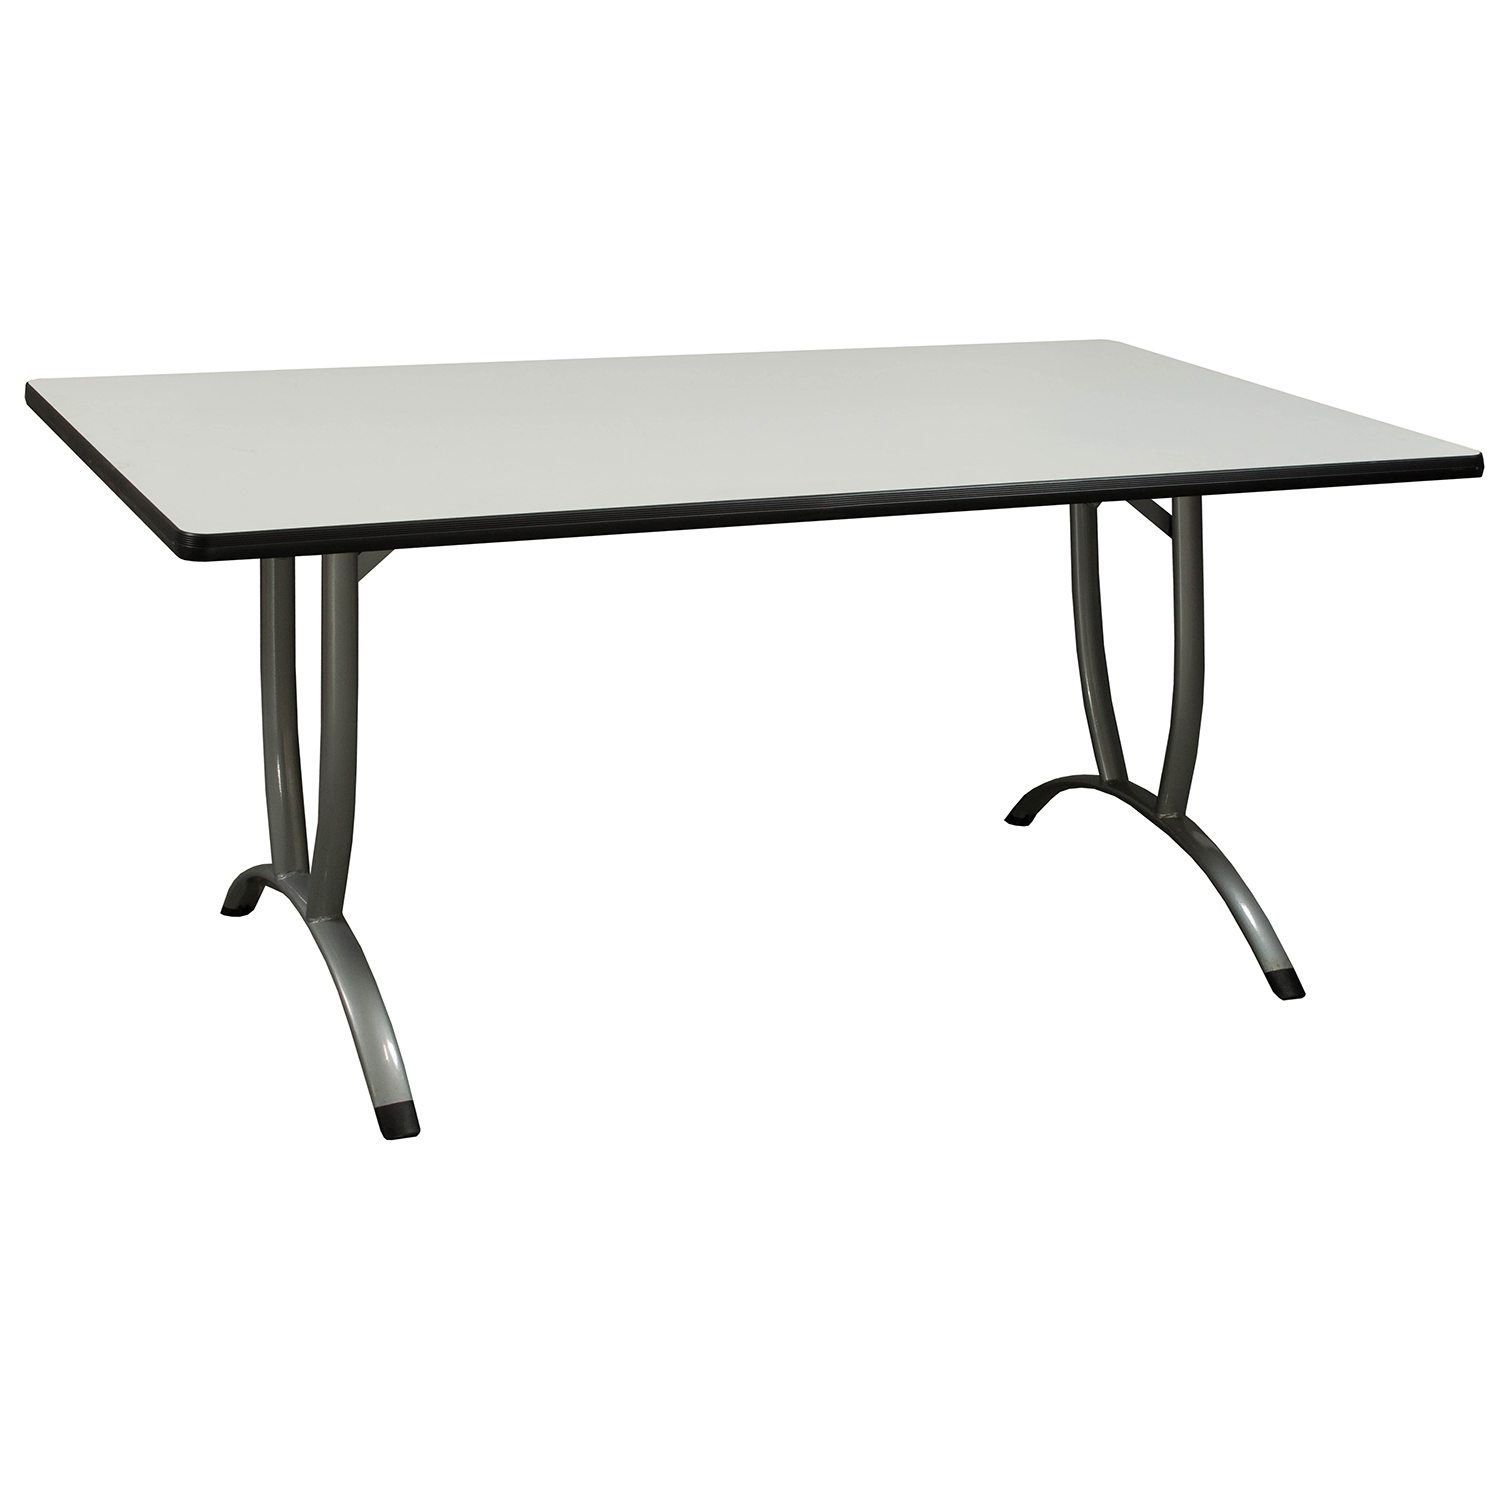 Steelcase Vecta Used 30x60 Inch Laminate Folding Table